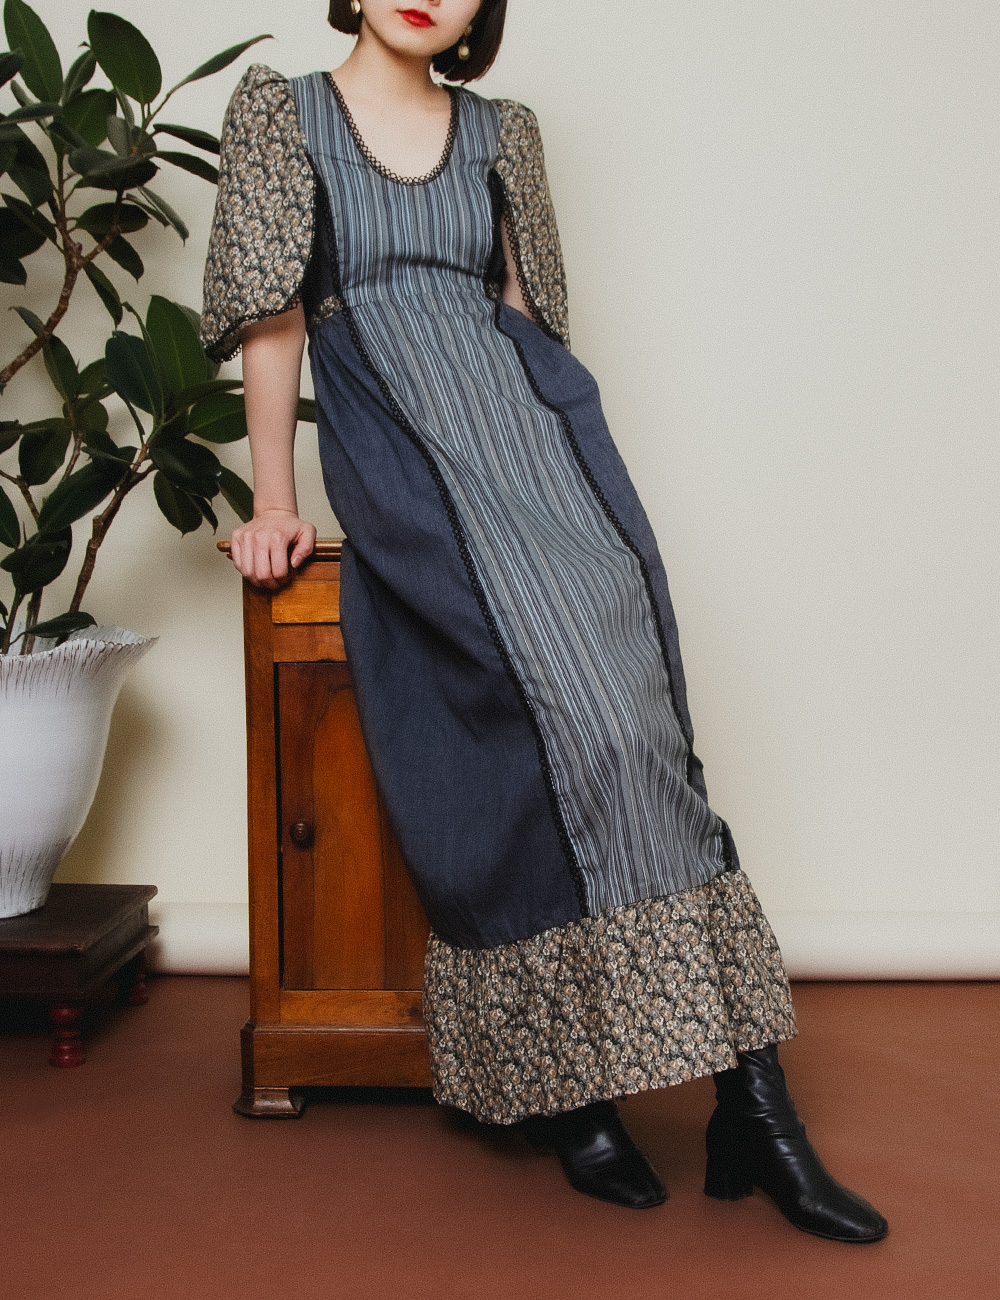 1970's Flower × Stripe Design Dress